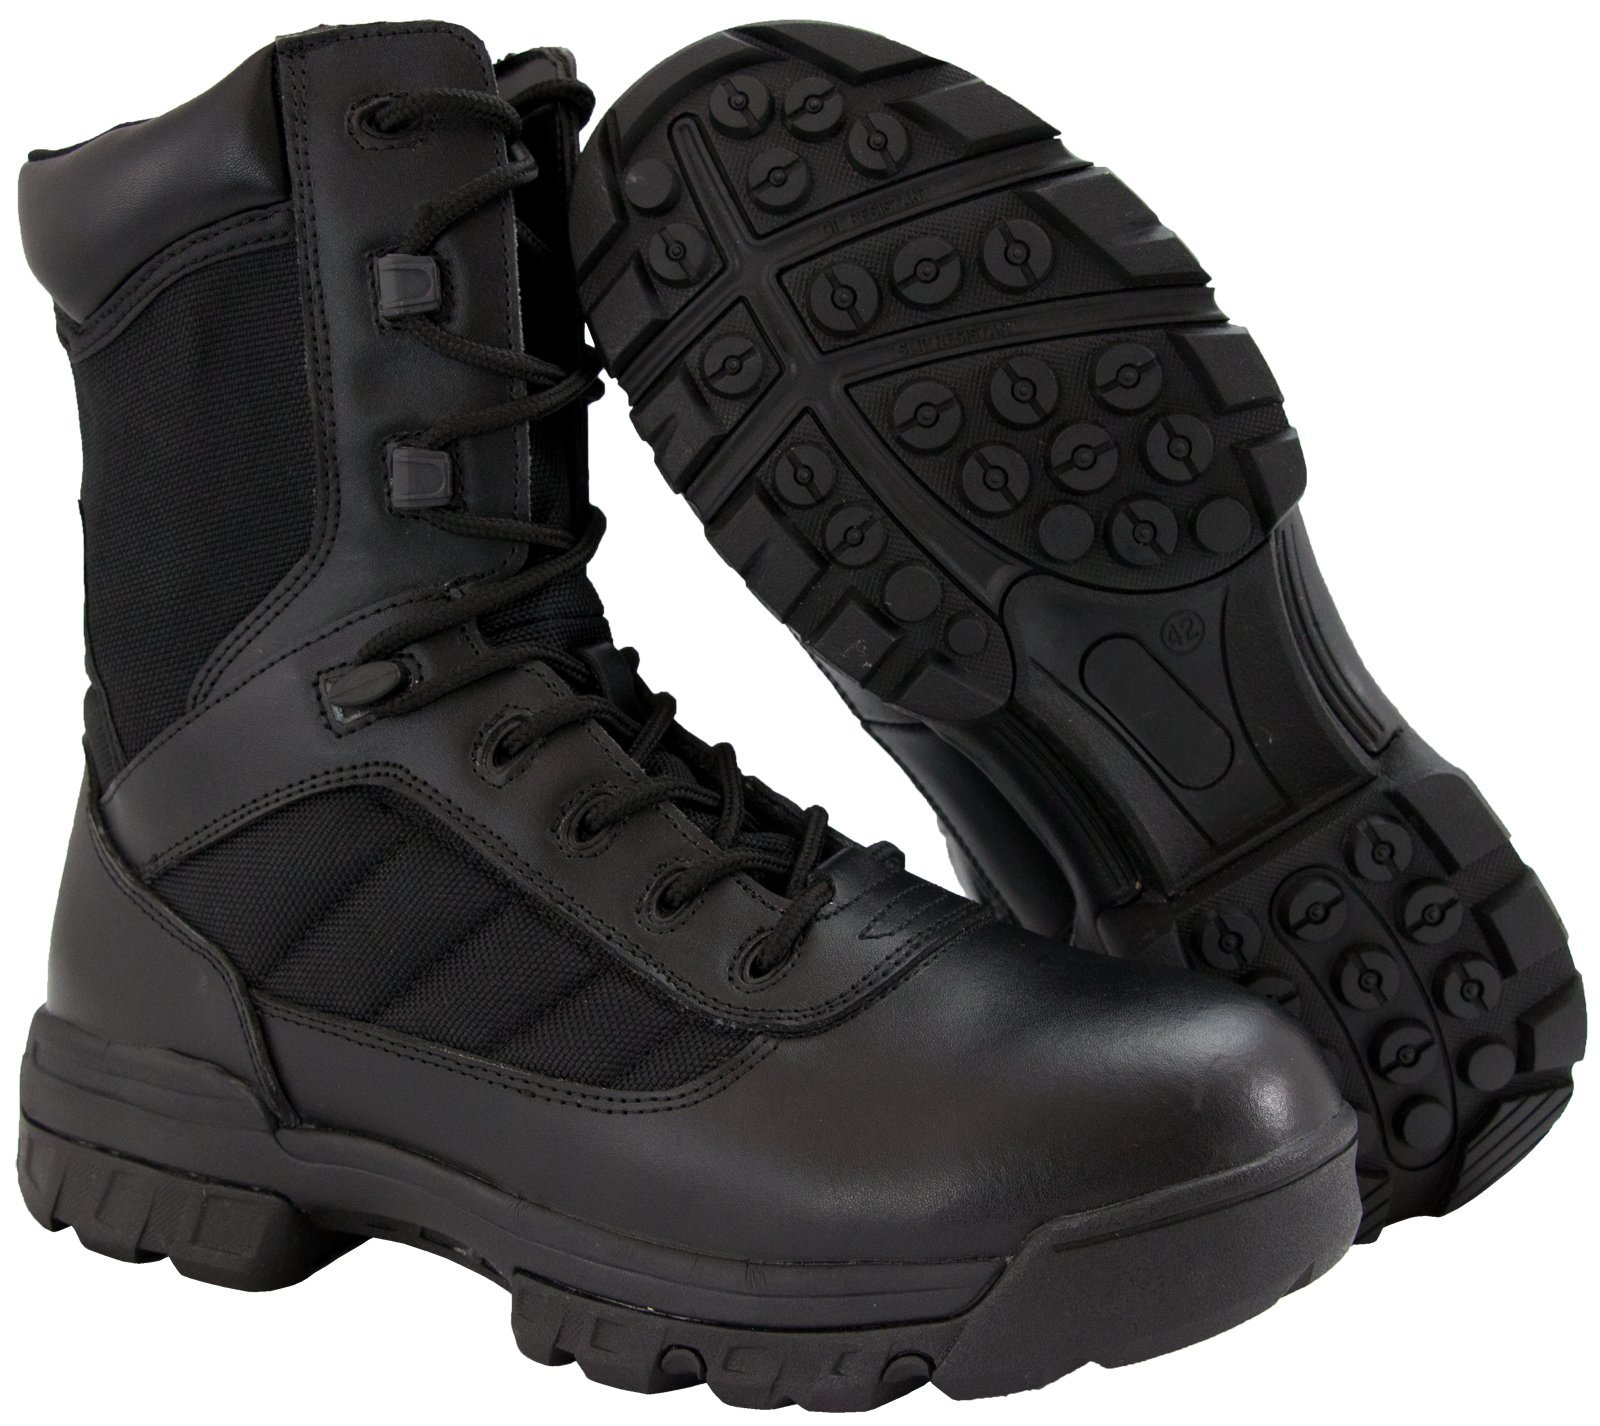 8'' Ryno Gear Tactical Combat Boots with CoolMax Lining (Black) (12) by Ryno Gear